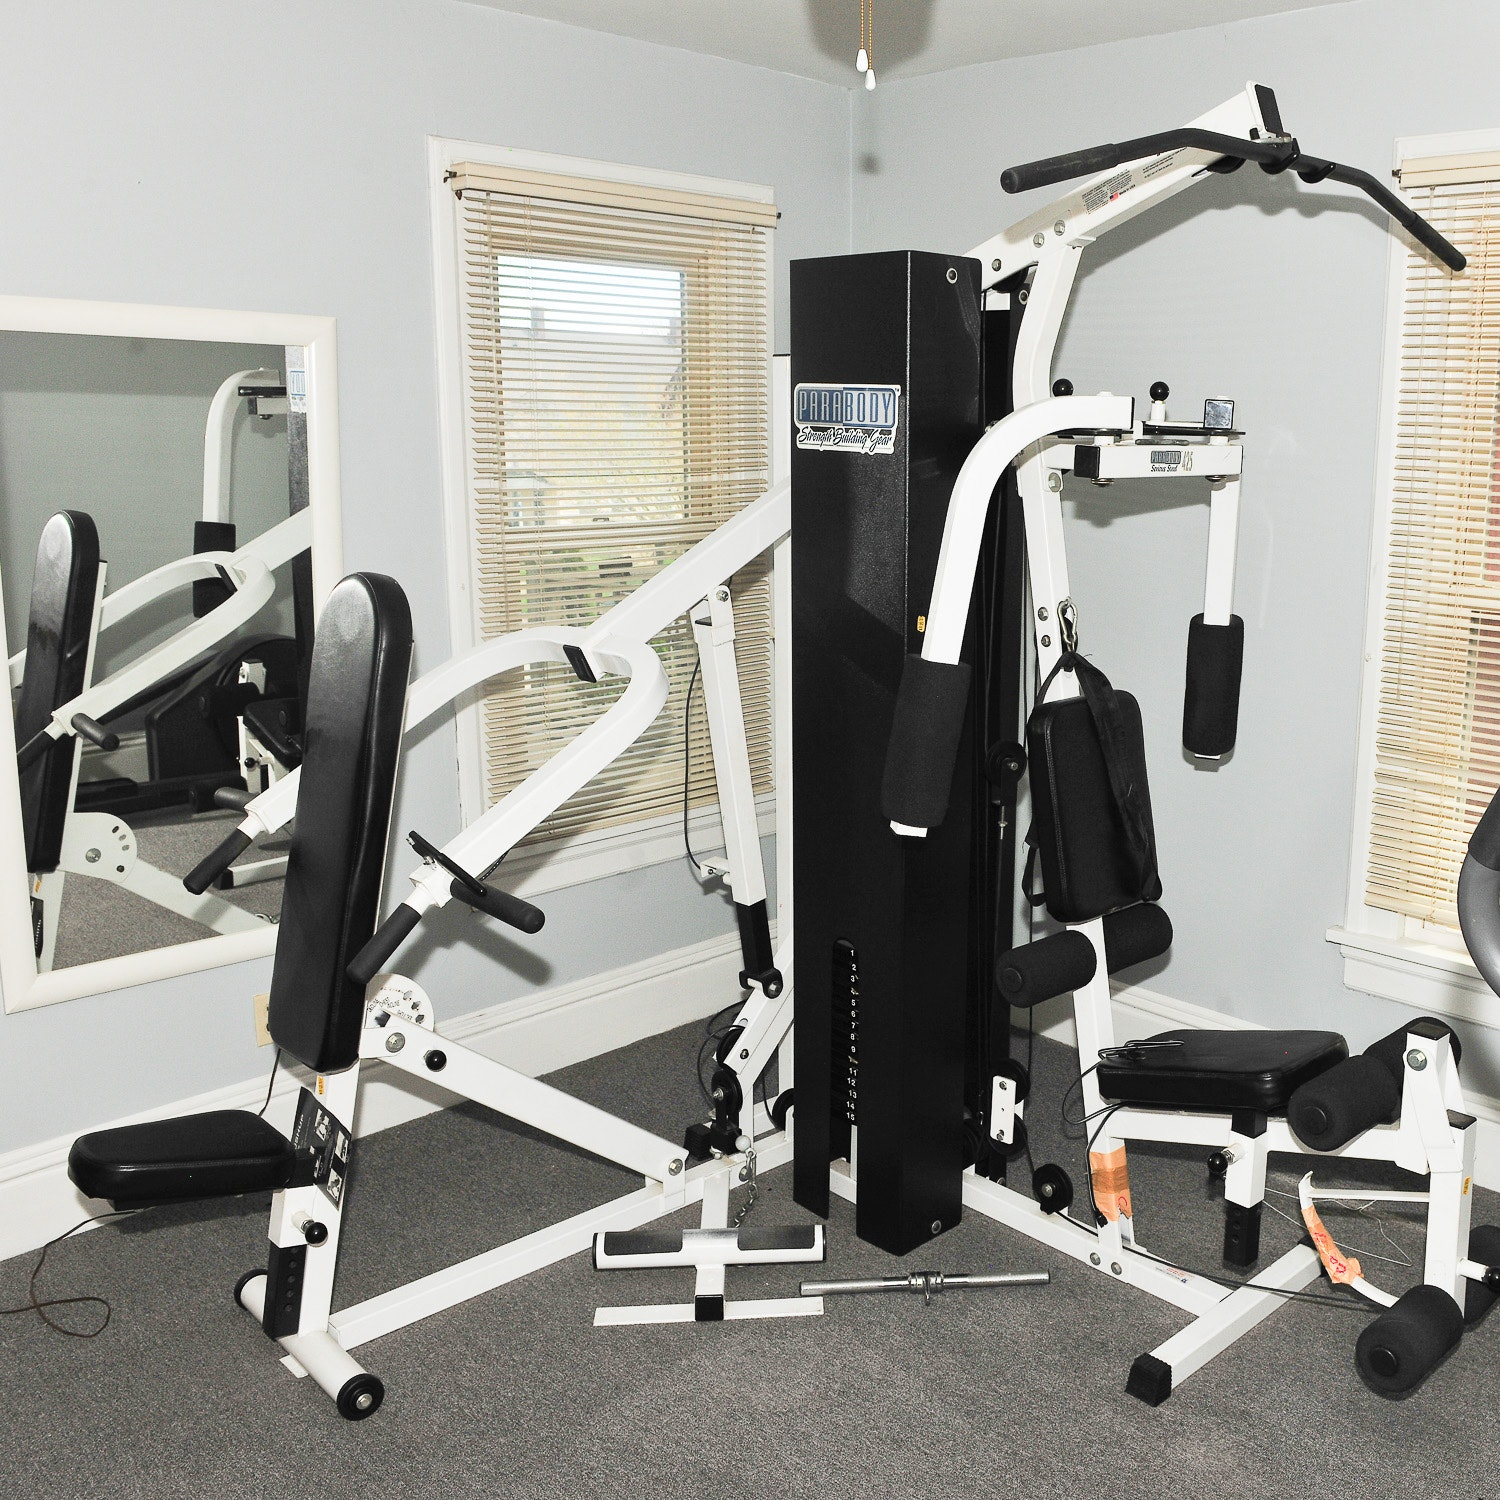 Parabody 425 Serious Stell Multi Station Home Gym ...